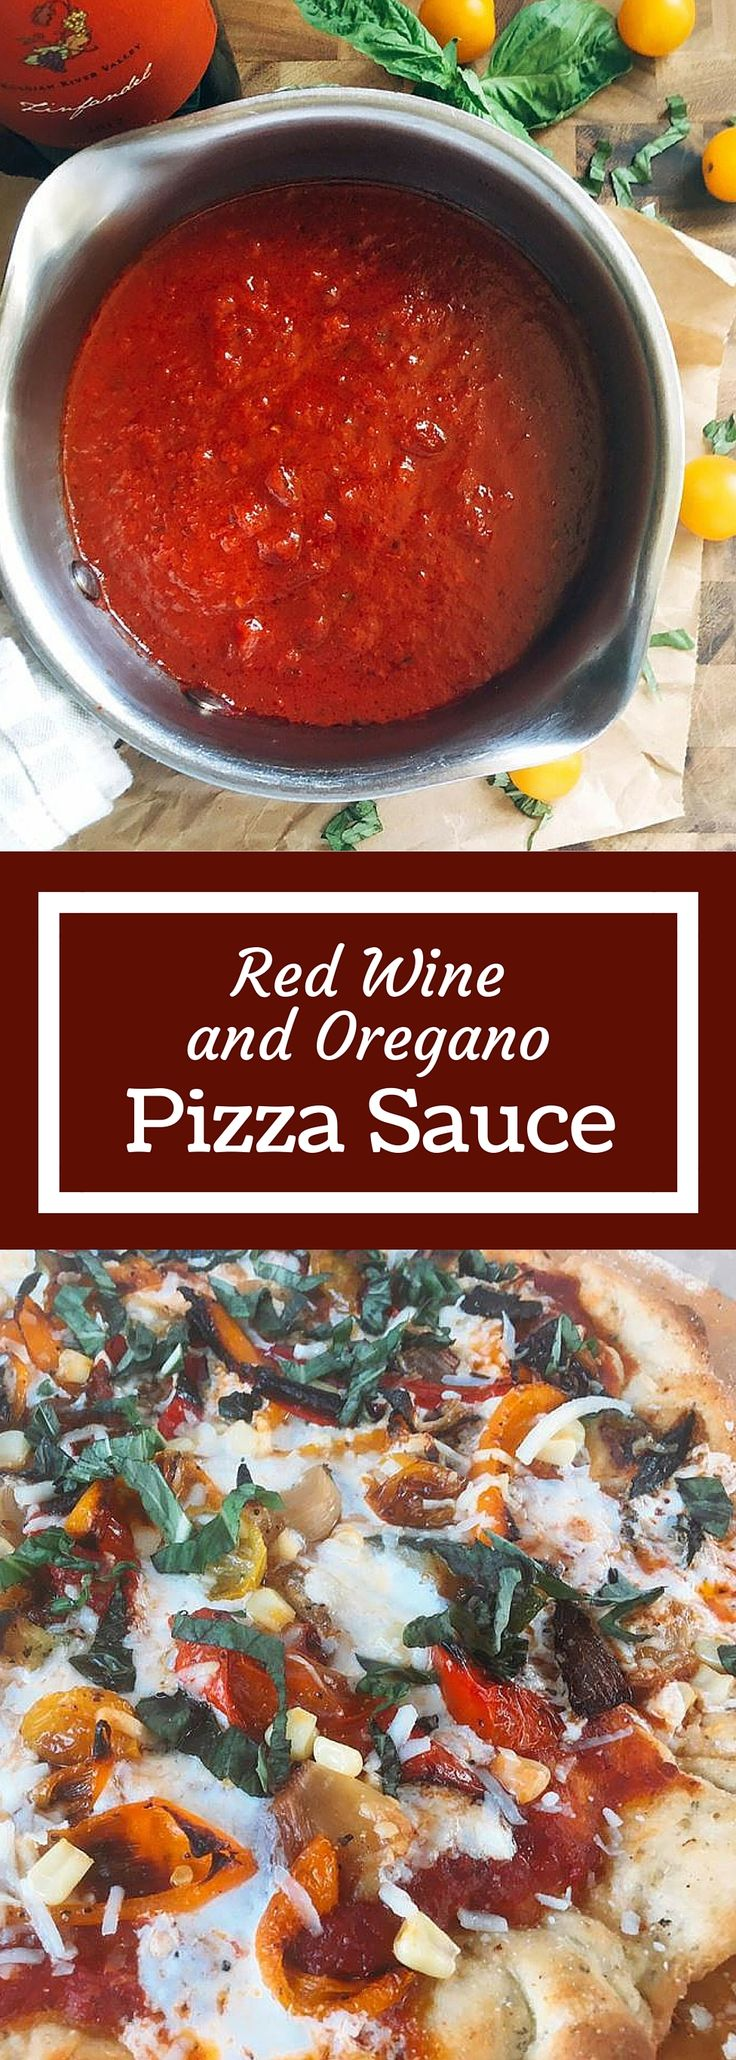 Red wines, Pizza and Sauces on Pinterest